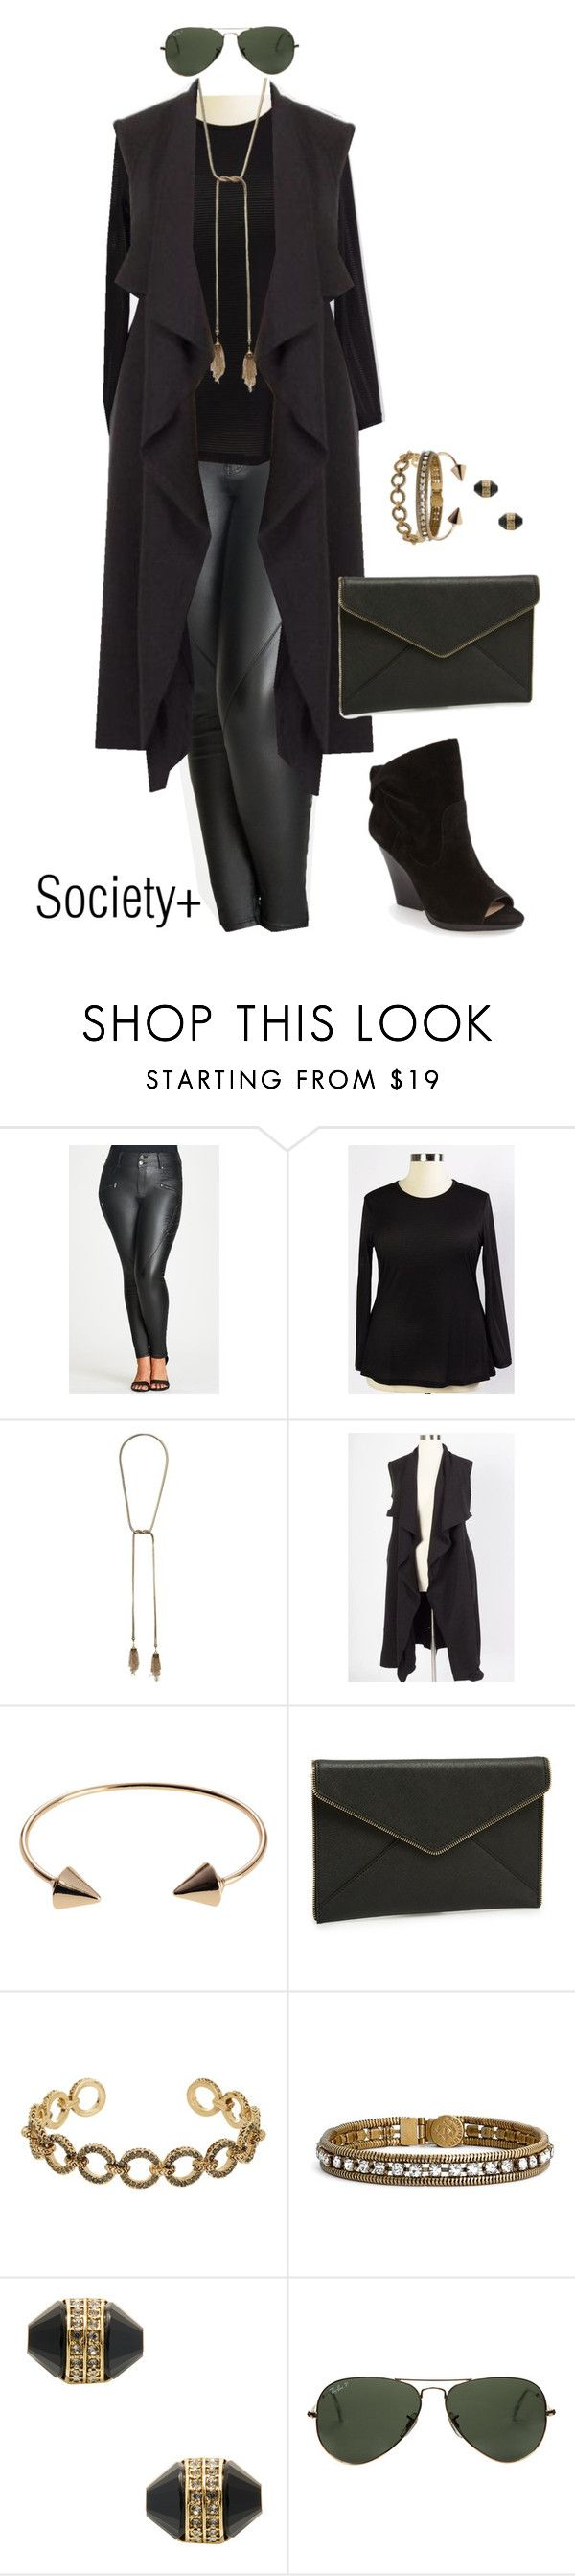 """Plus Size Black Chicest of Them All Vest - Society+"" by iamsocietyplus on Polyvore featuring Kendra Scott, Journee Collection, Rebecca Minkoff, House of Harlow 1960, Loren Hope, Ray-Ban, Vince Camuto, plussize, plussizefashion and societyplus"